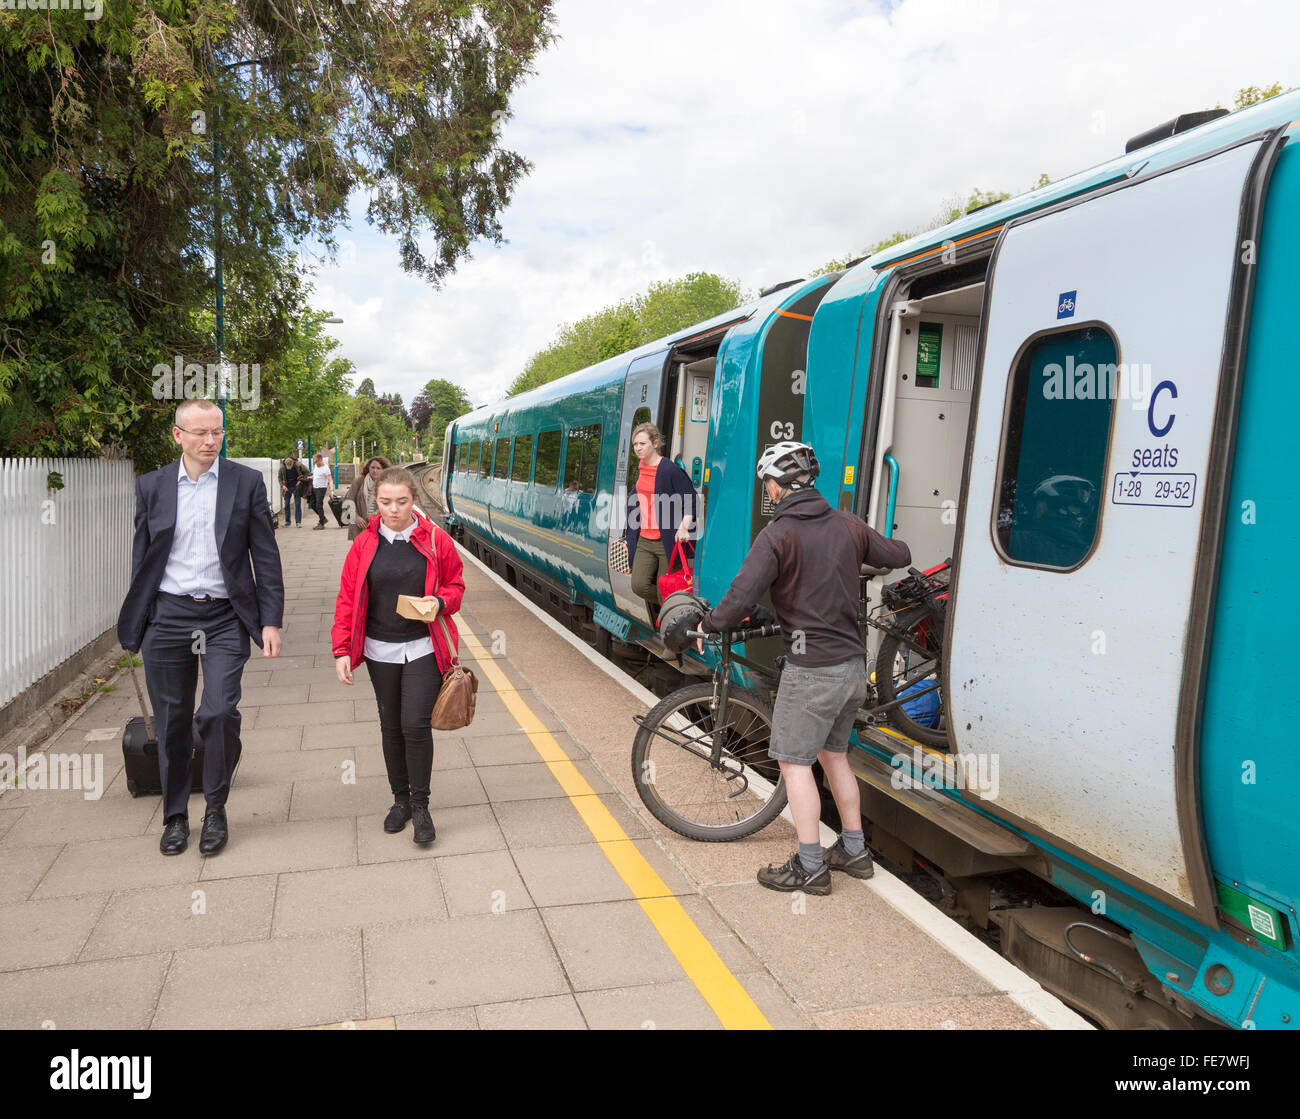 Railway station platform with passengers and bicycle unloading from train, Abergavenny, Wales, UK - Stock Image